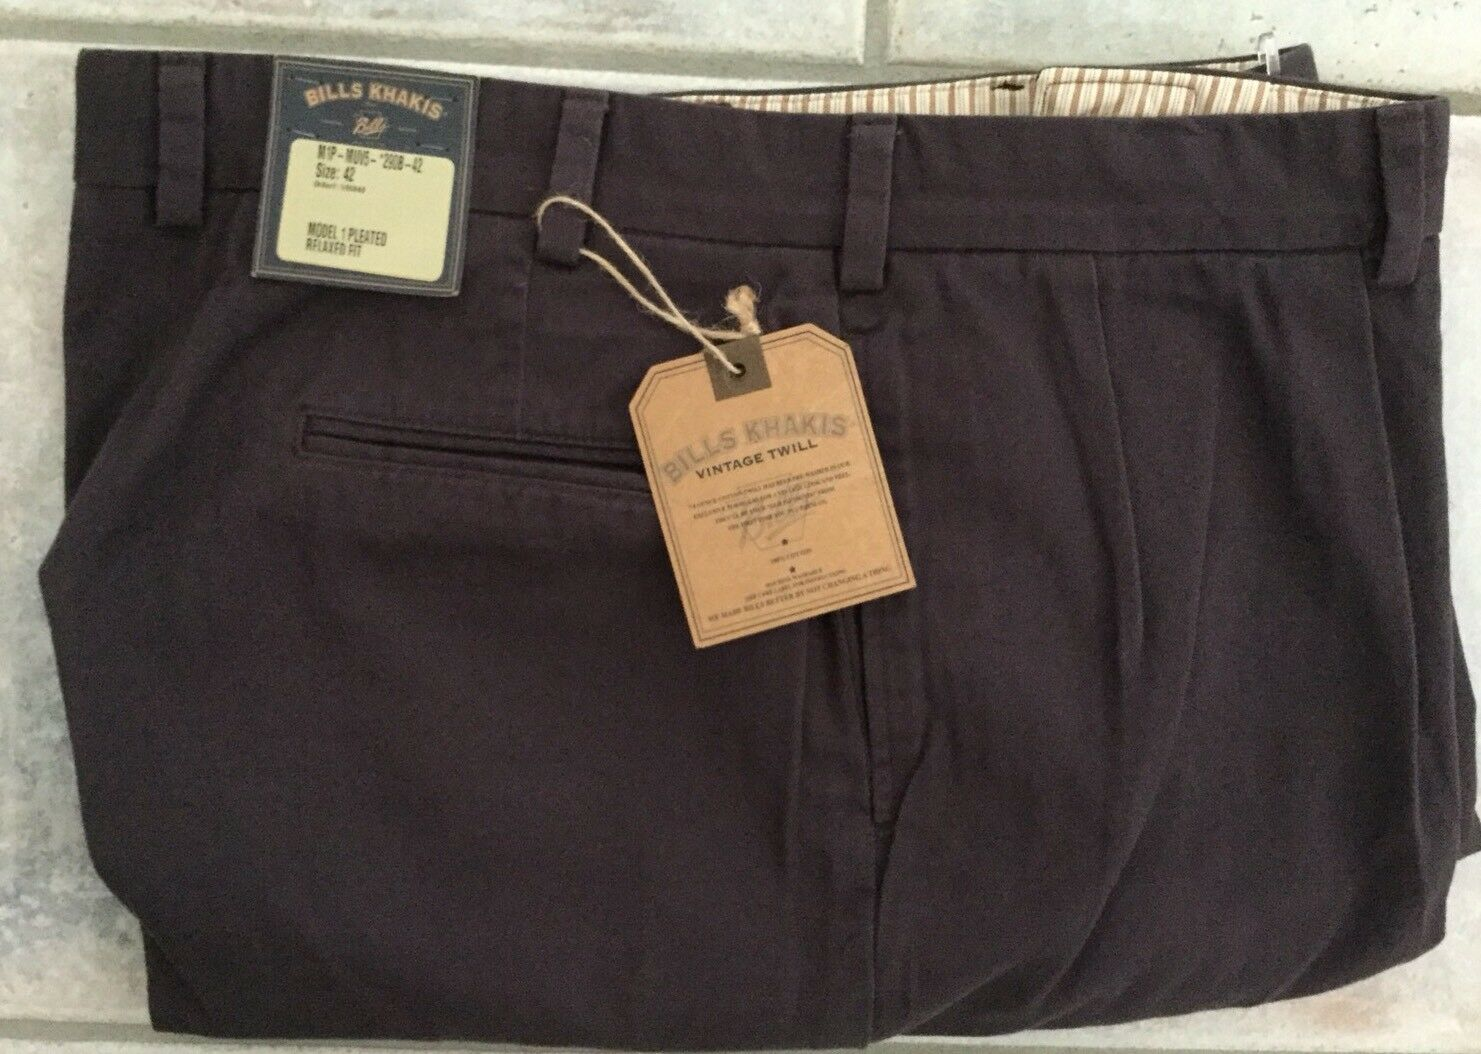 BRAND NEW-Bills khakis M3-MUV5 Size 33X33 Trim VINTAGE TWILL Mauve